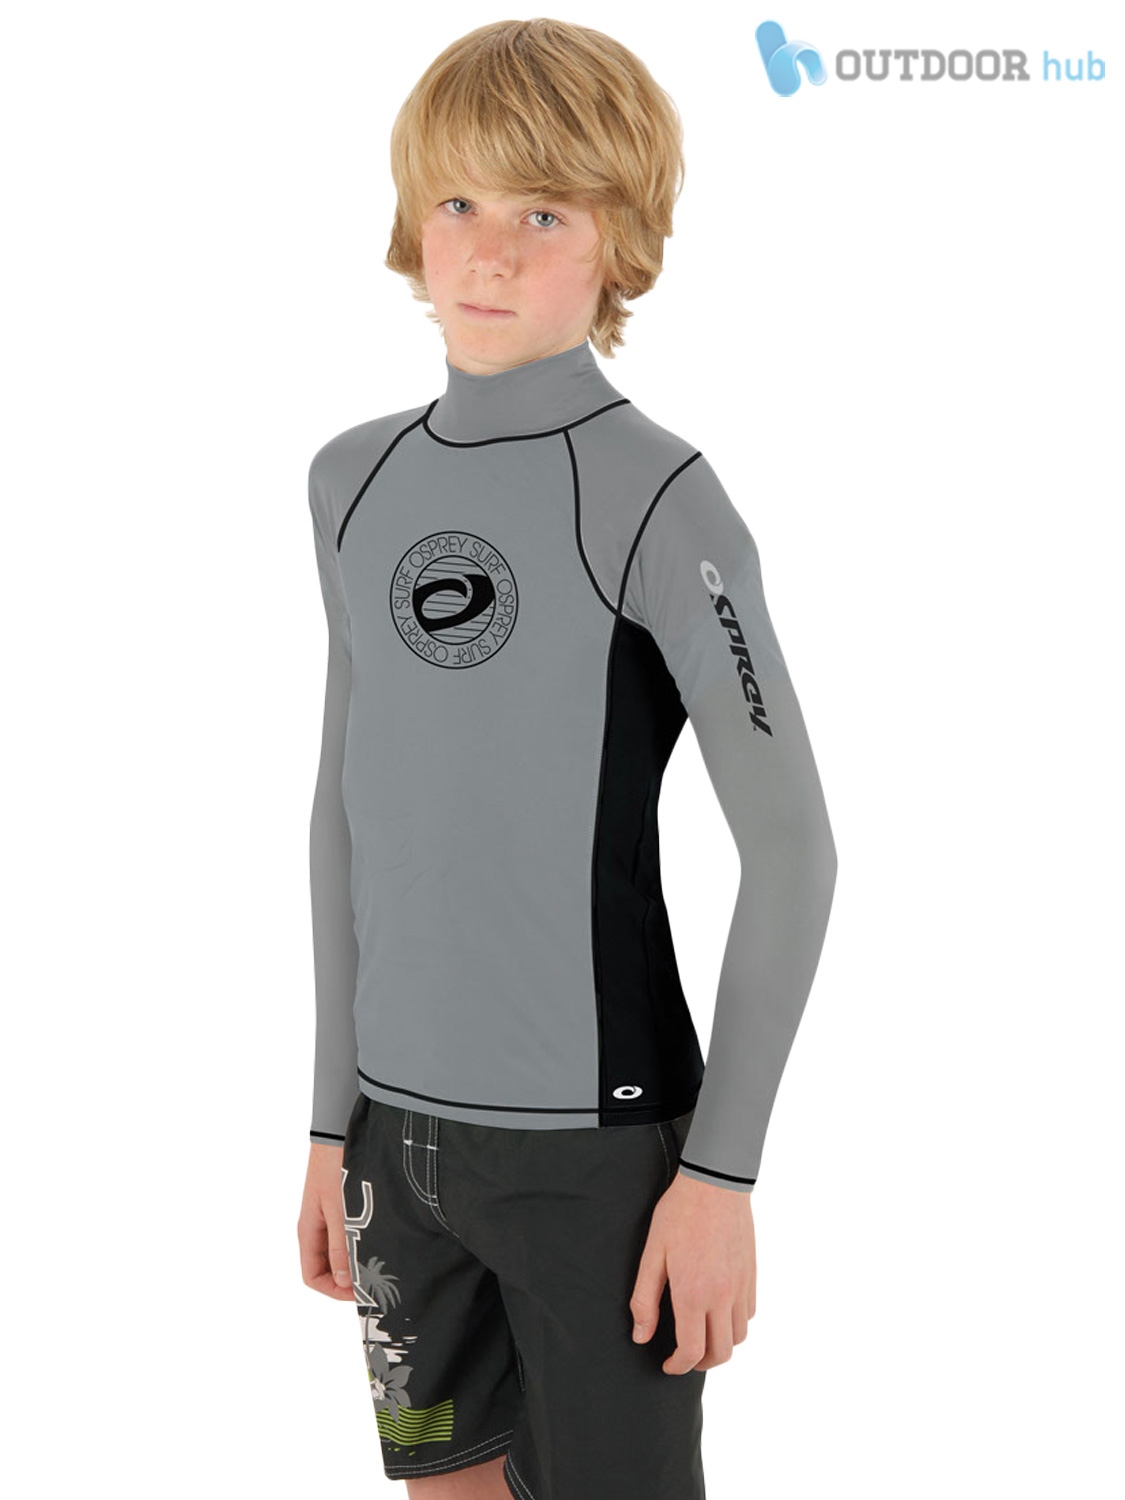 These shirts protect children with UPF50/ SPF coverage that will last all day long - even if they play in the water! Many colors of our rashguard shirts make children easier to .